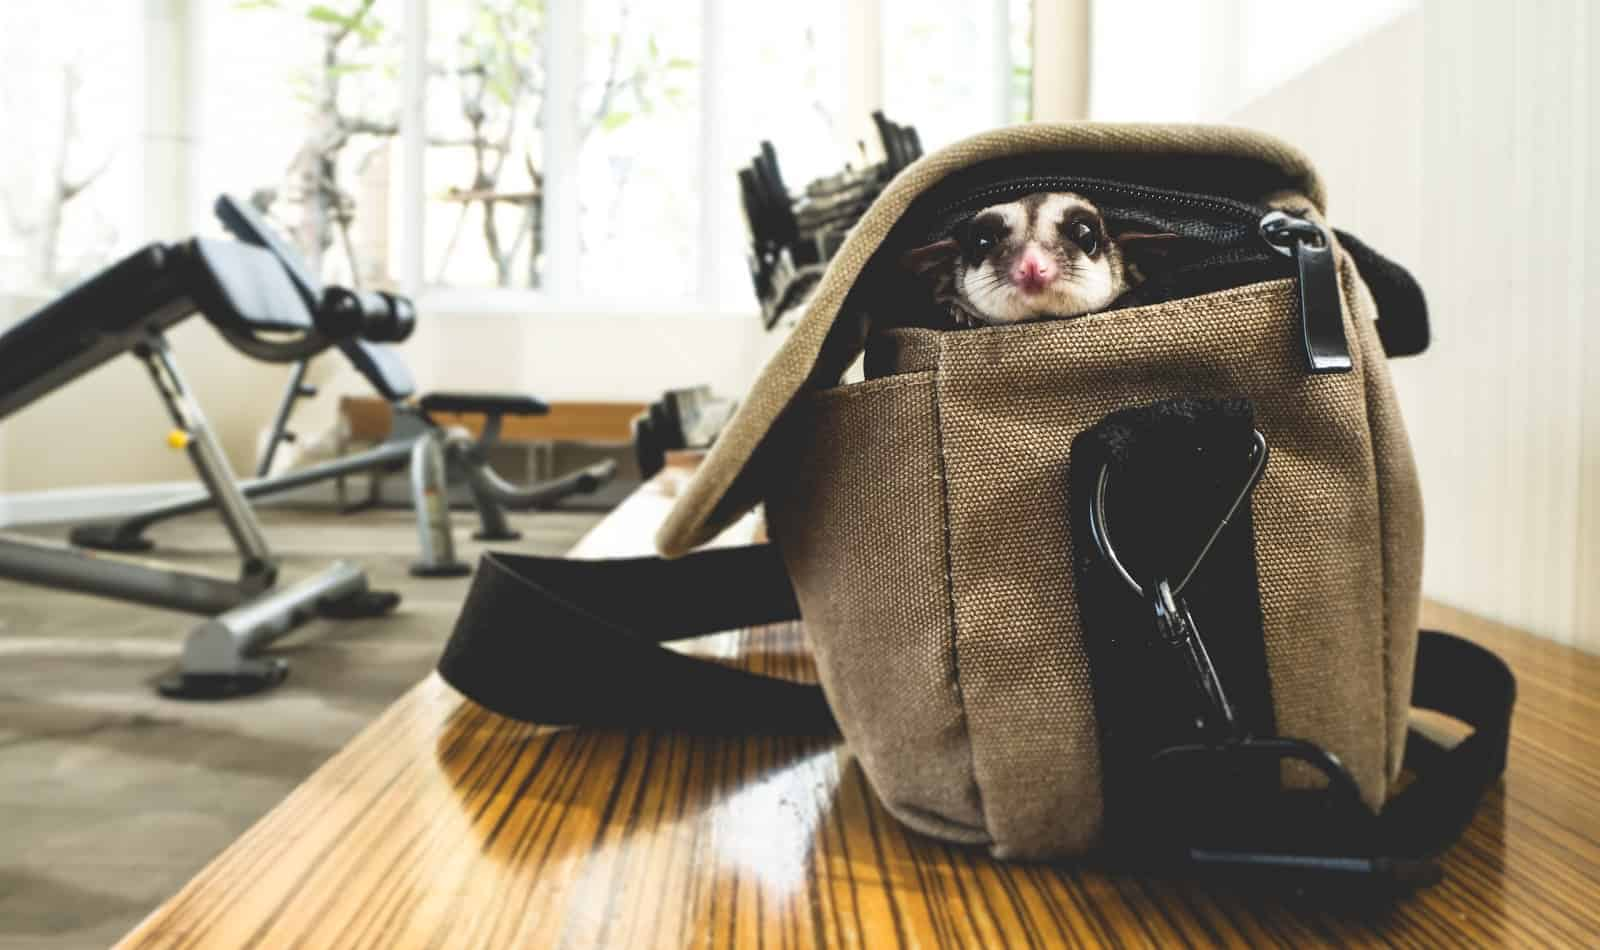 Need some tips on how to introduce sugar gliders to each other? Don't worry, it's easier than you might think! Just follow our simple step-by-step guide!